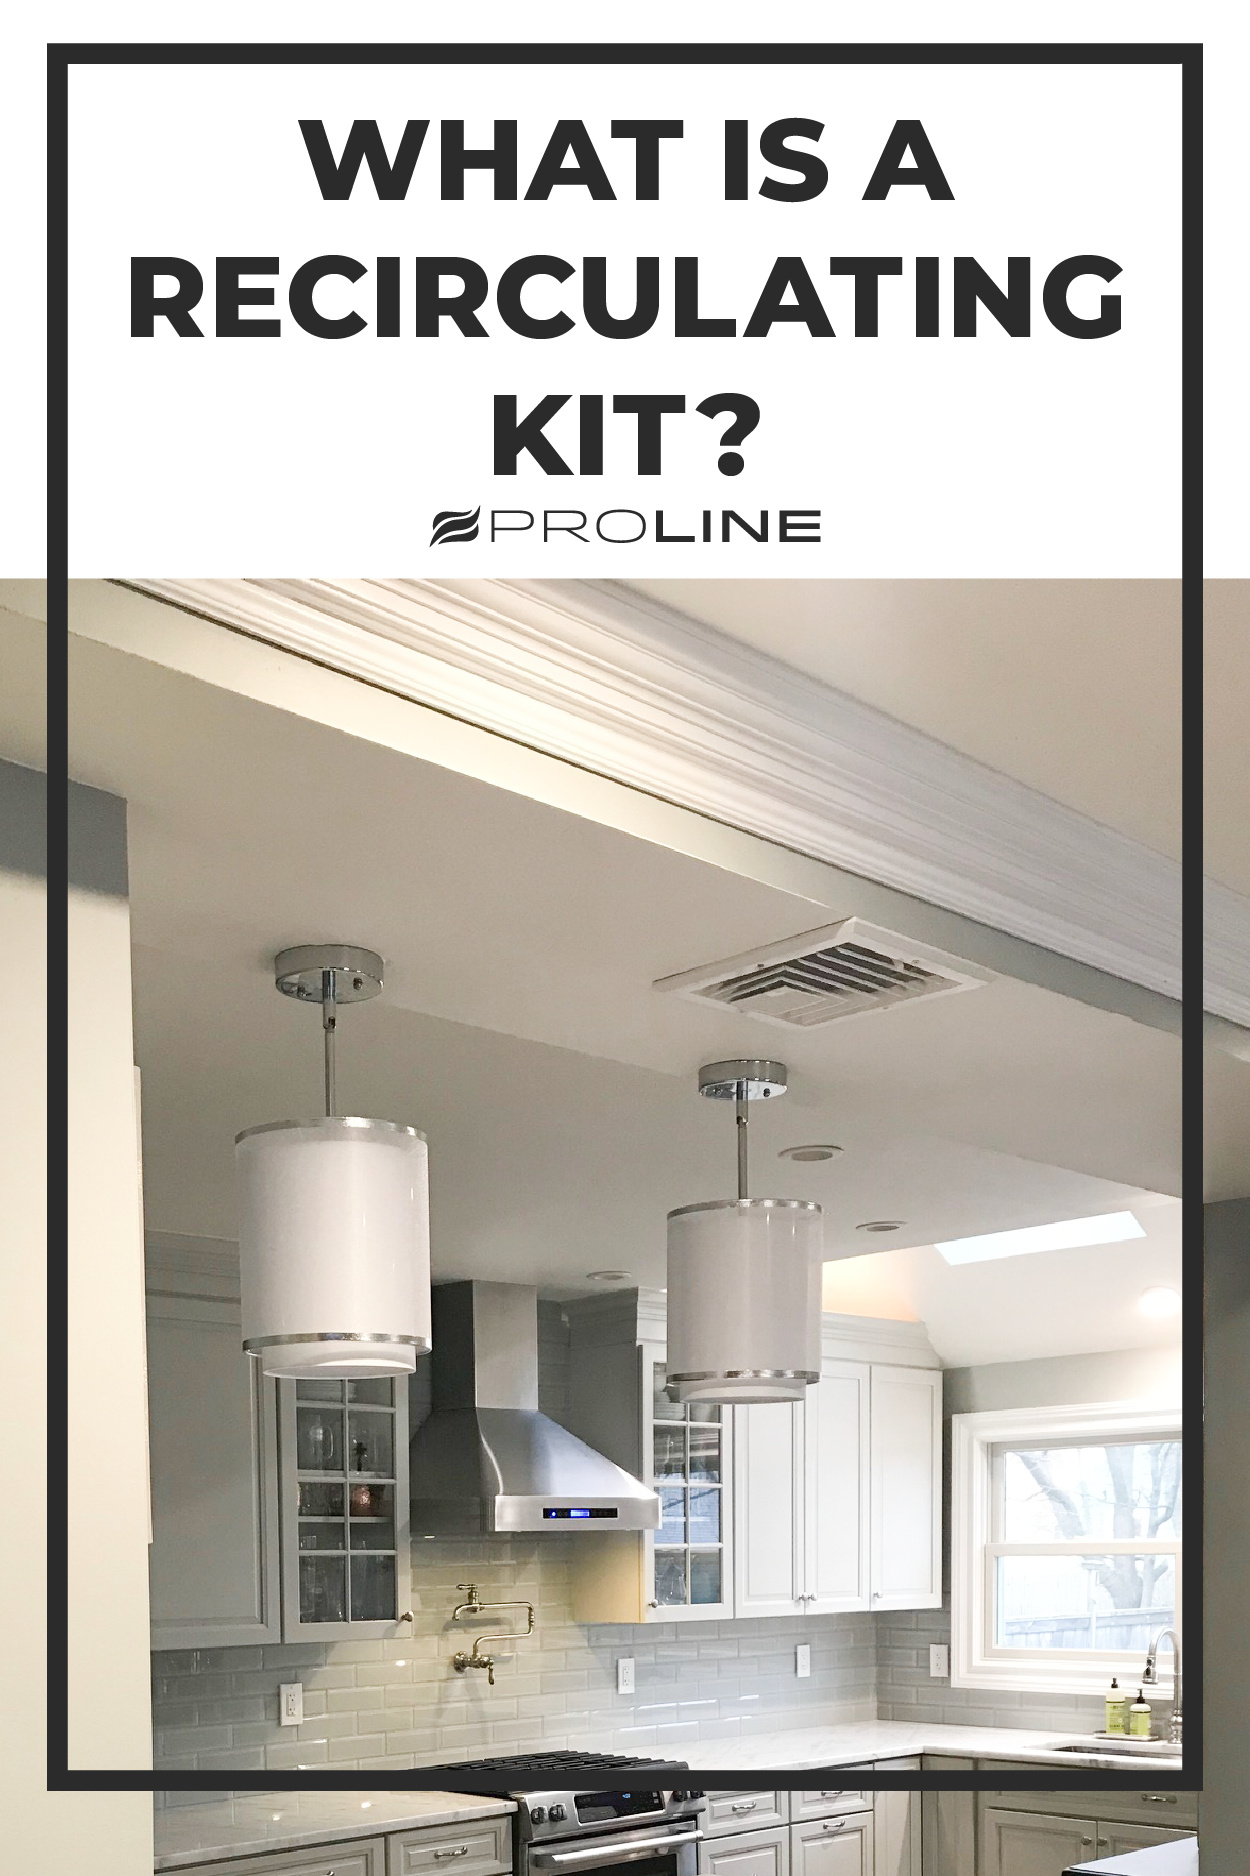 What Is A Recirculating Kit Under Cabinet Range Hoods Ducted Range Hood Ductless Range Hood